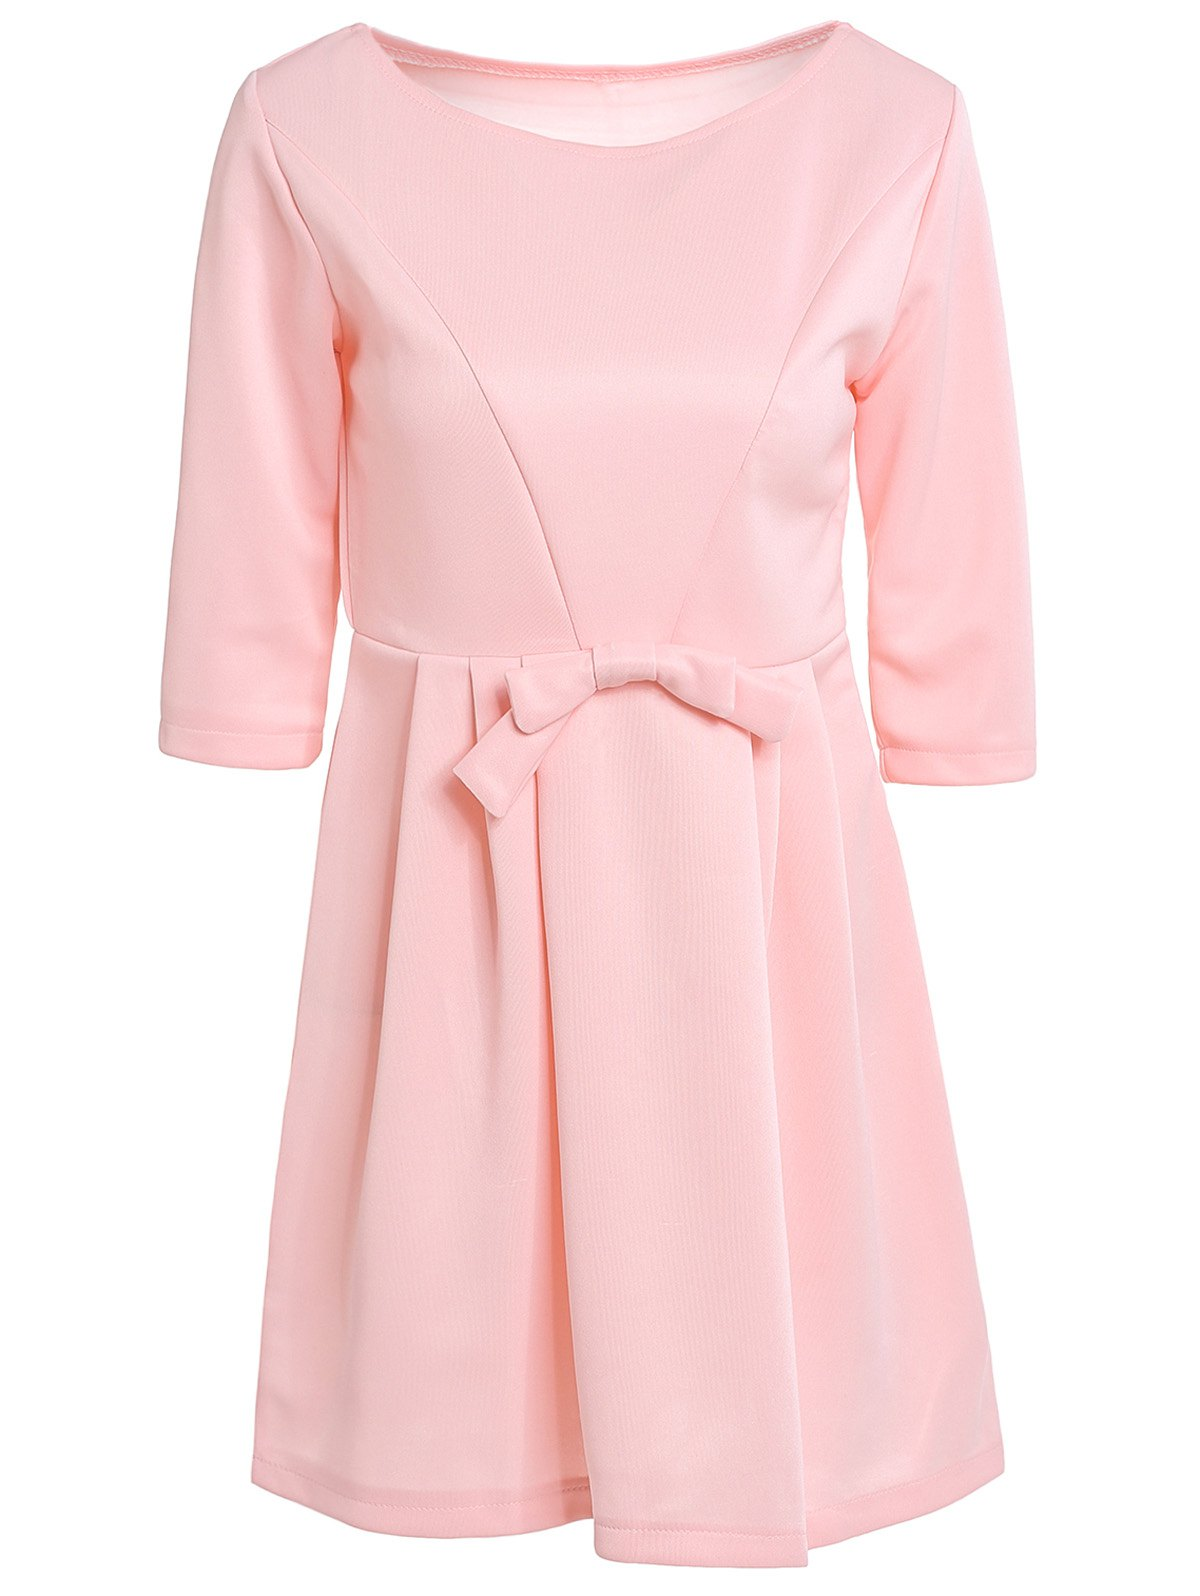 Outfit Women's Chic Jewel Neck 3/4 Sleeve Solid Color Bowknot Decorated Dress